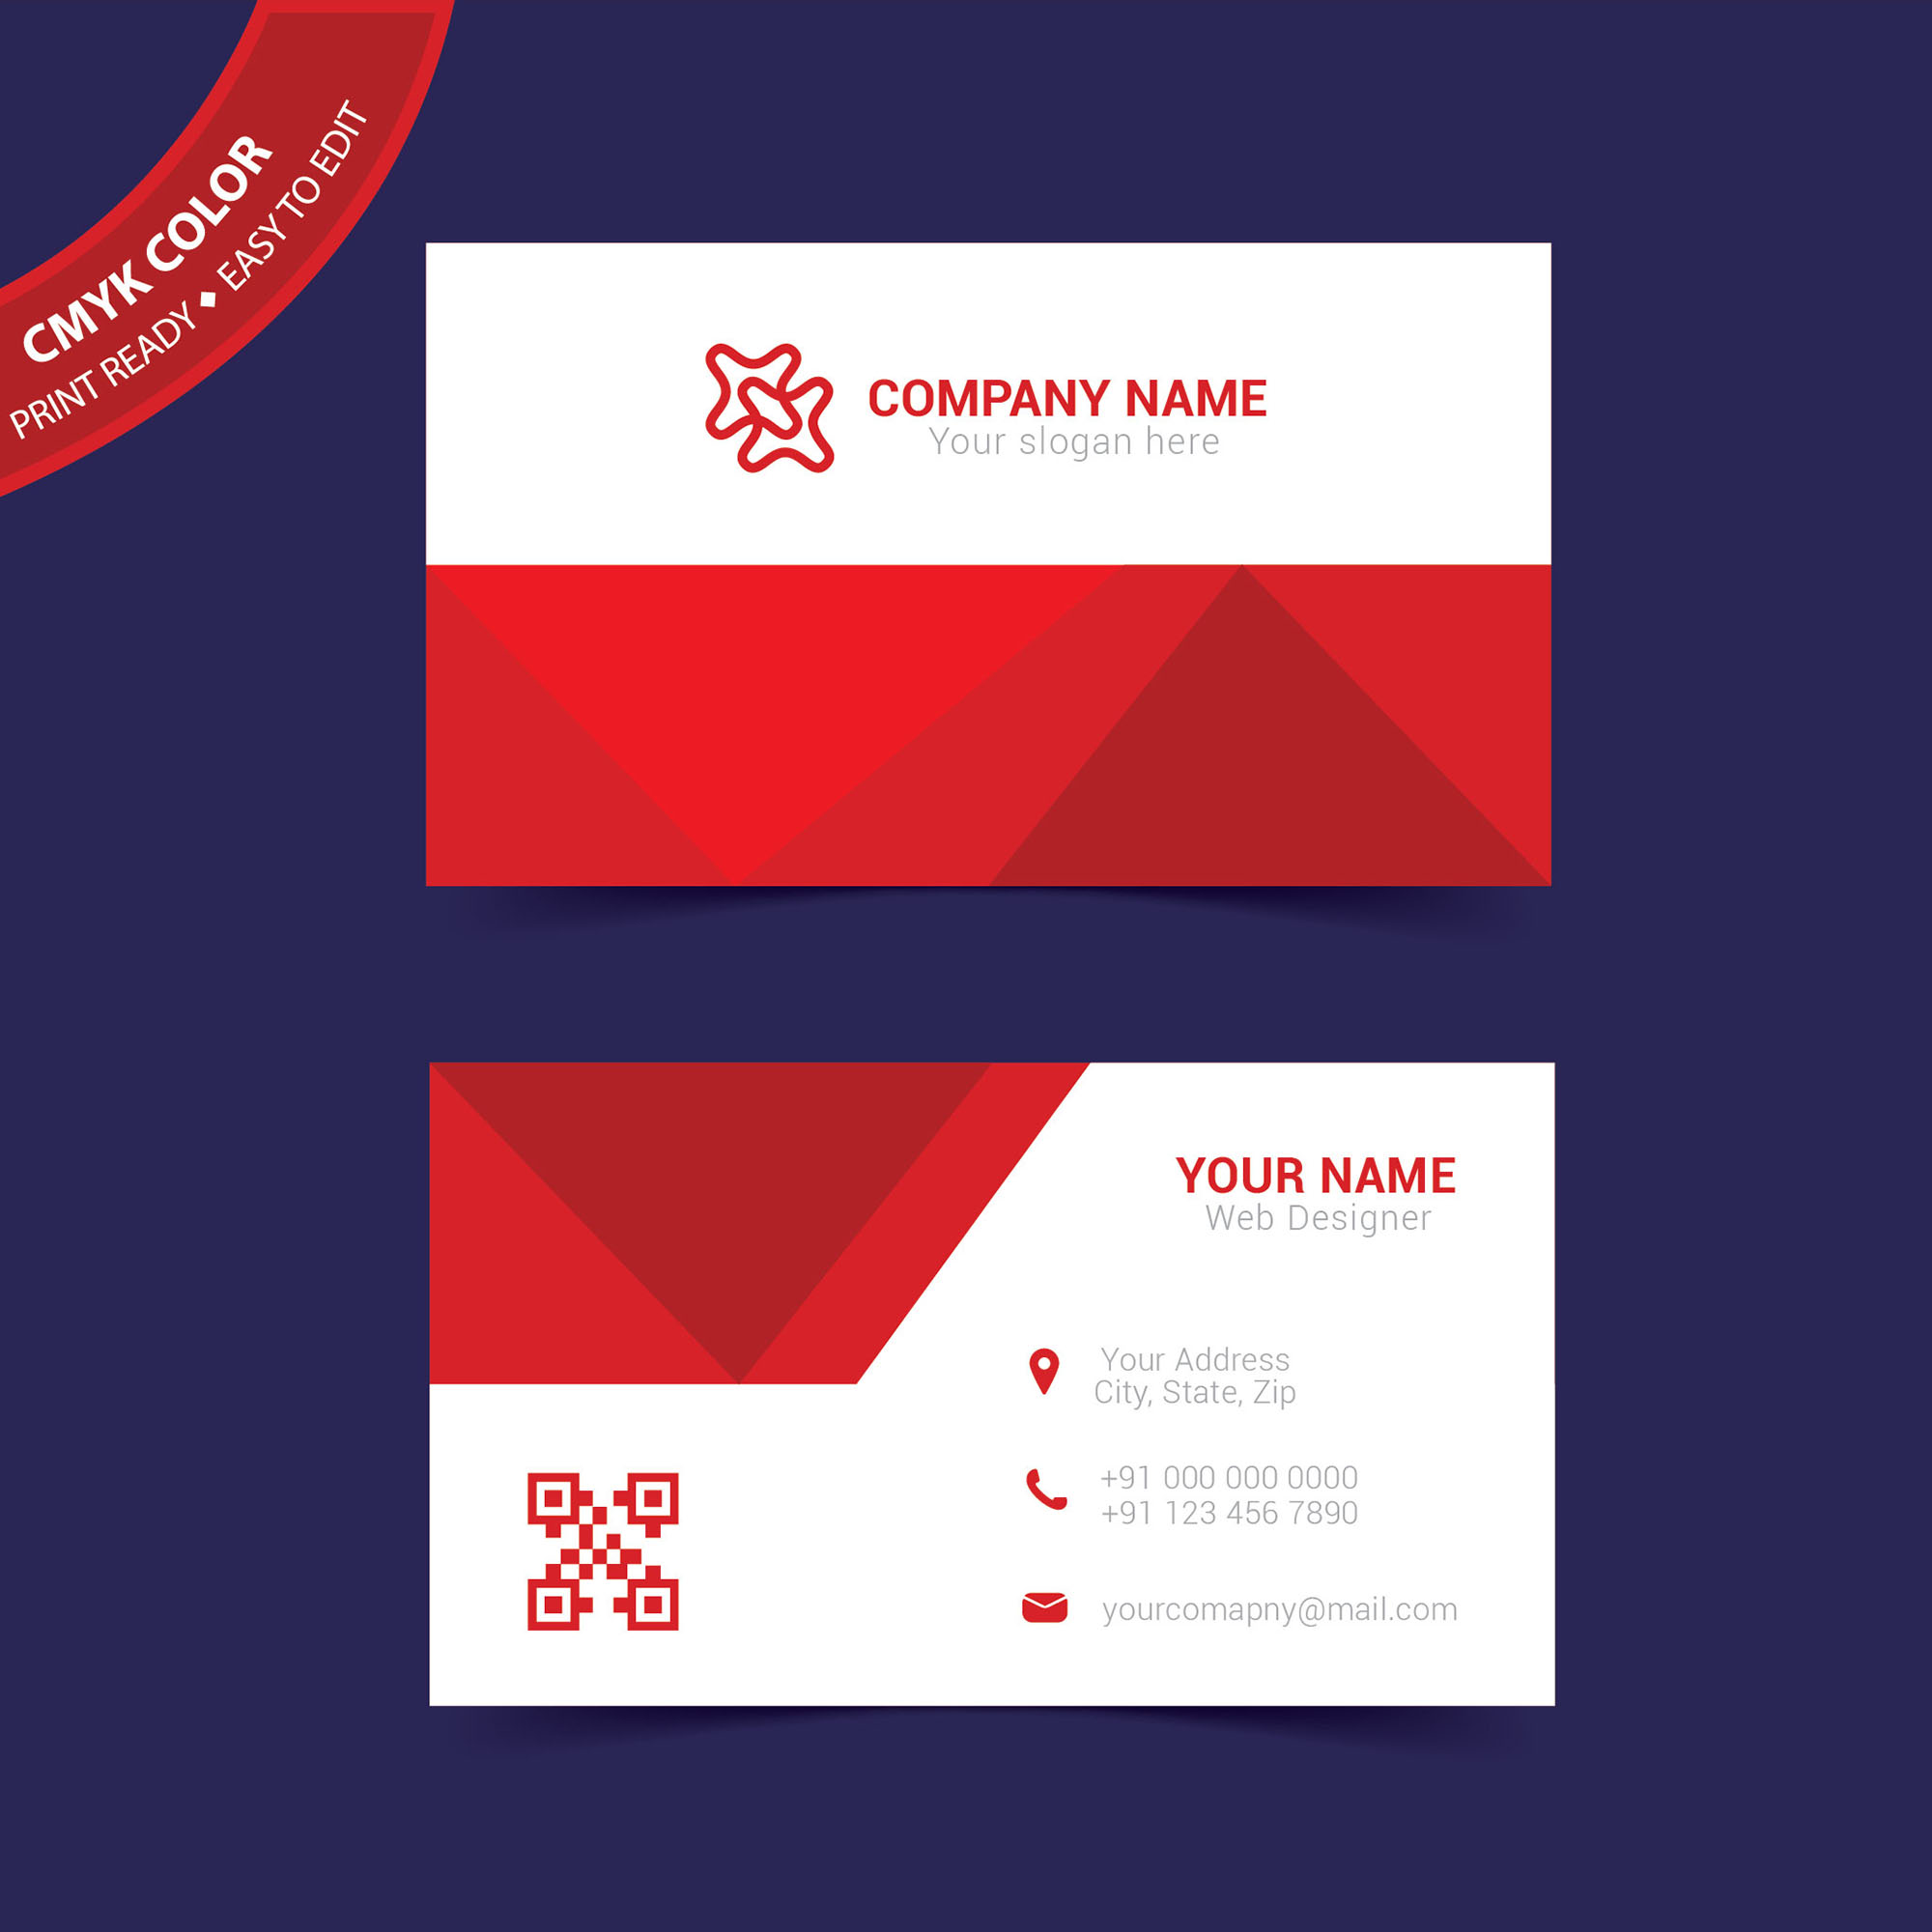 Business card print template free download wisxi business card business cards business card design business card template design templates flashek